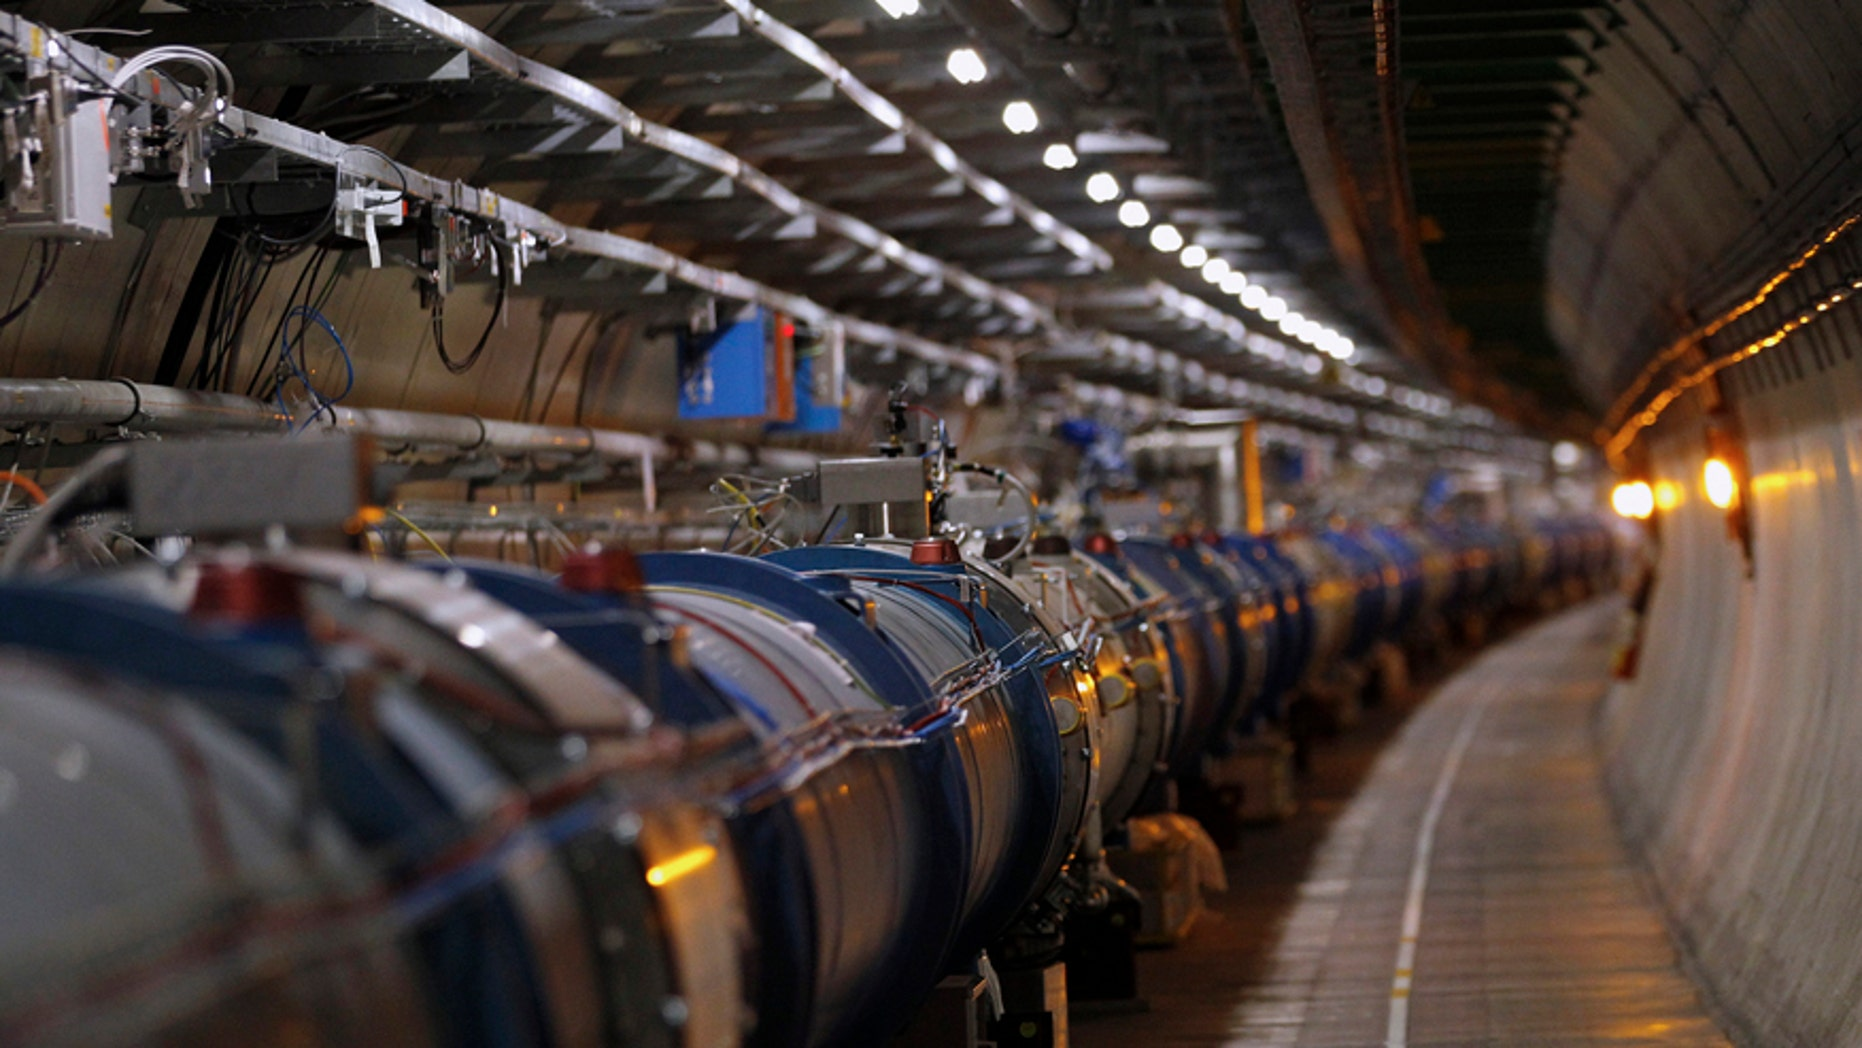 The LHC (Large Hadron Collider) tunnel.